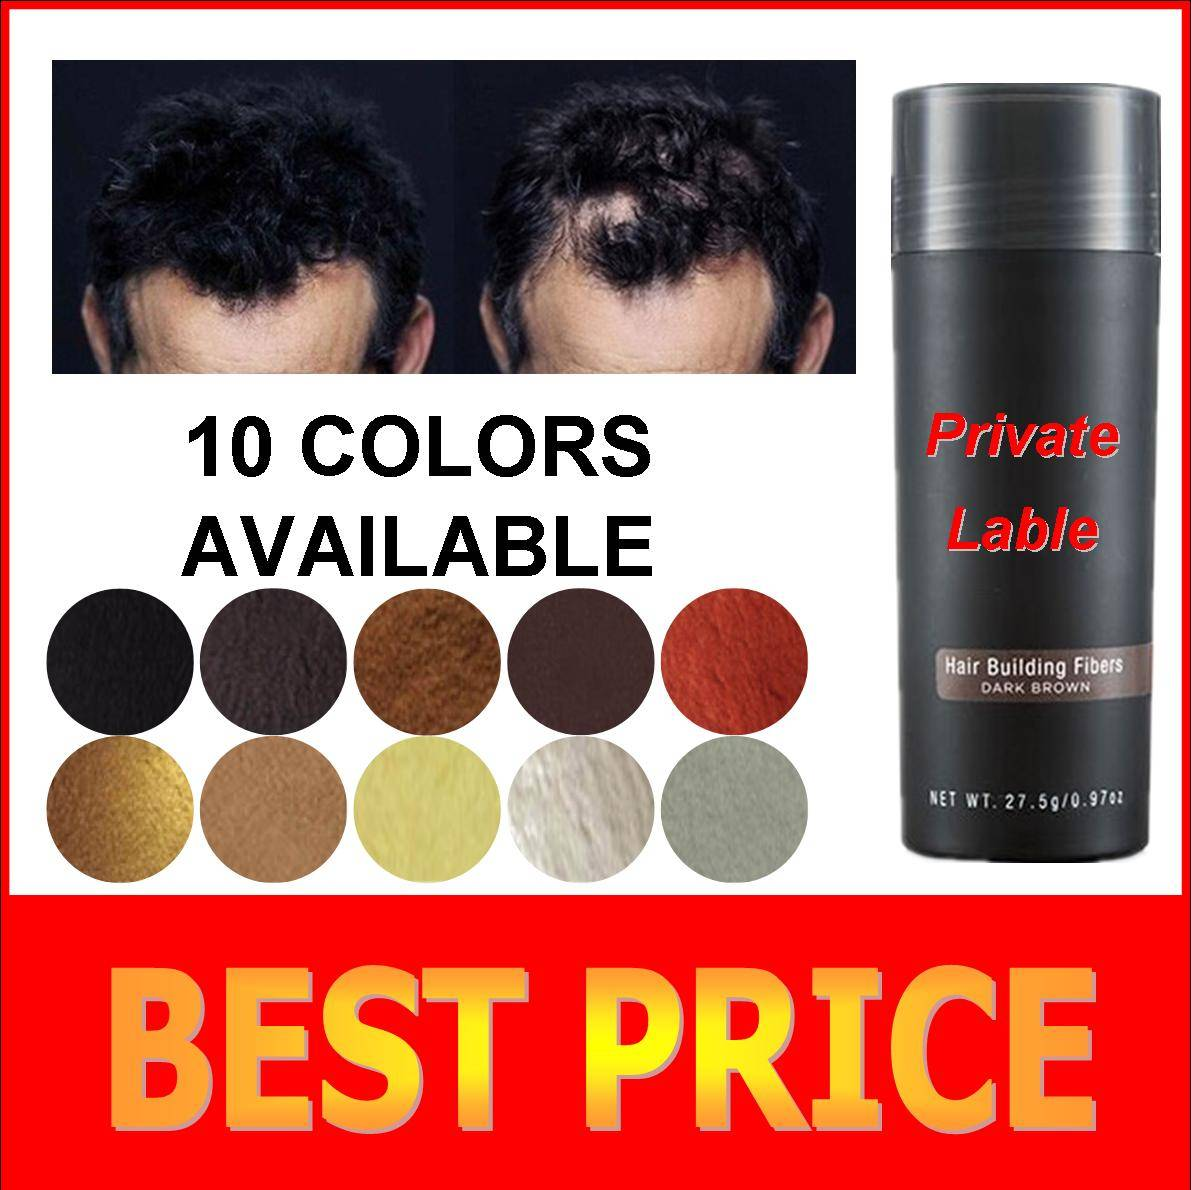 Keratin hair treatment private label hair building fiber for small MOQ 10-30g are availa..